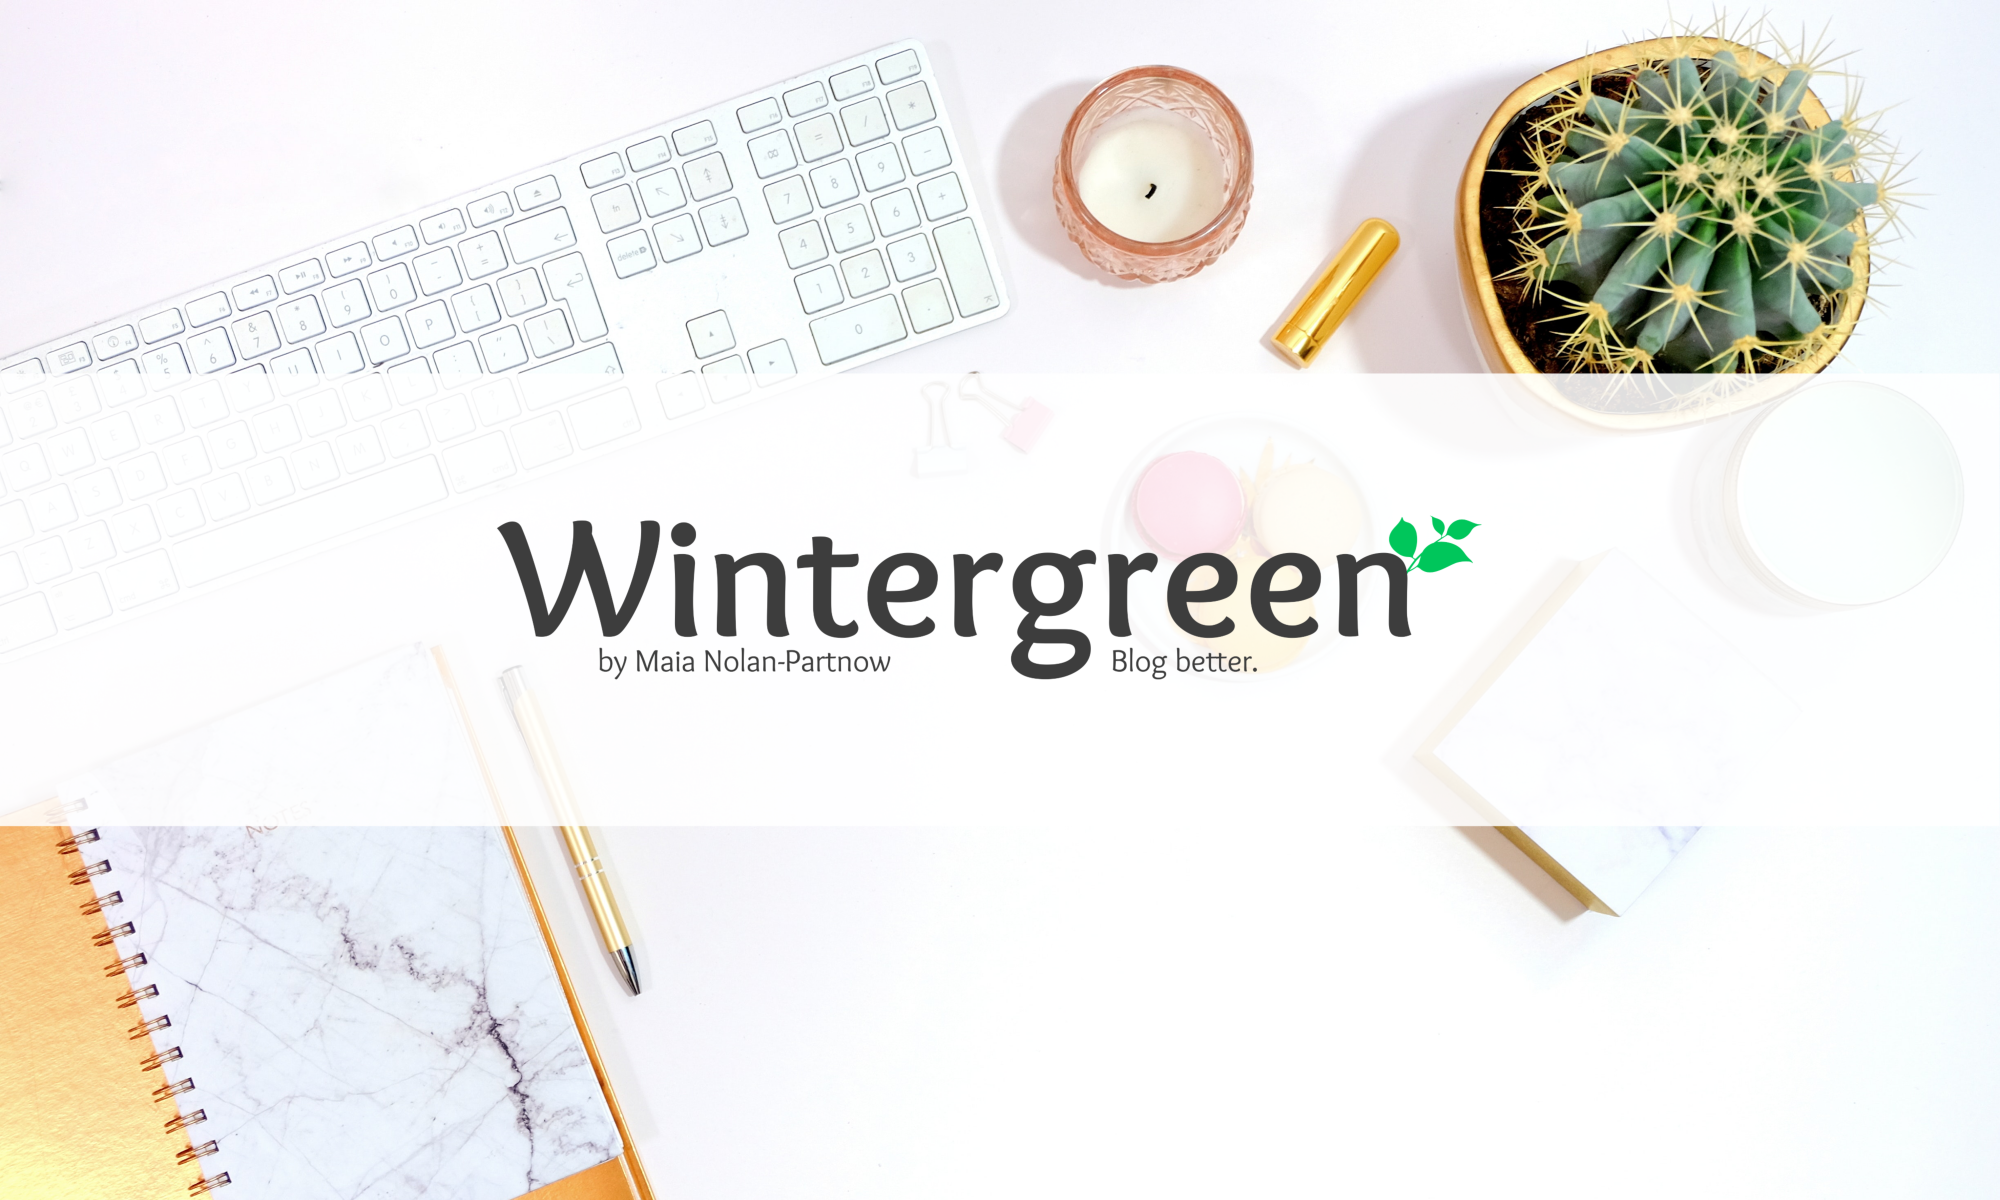 Wintergreen by Maia Nolan-Partnow